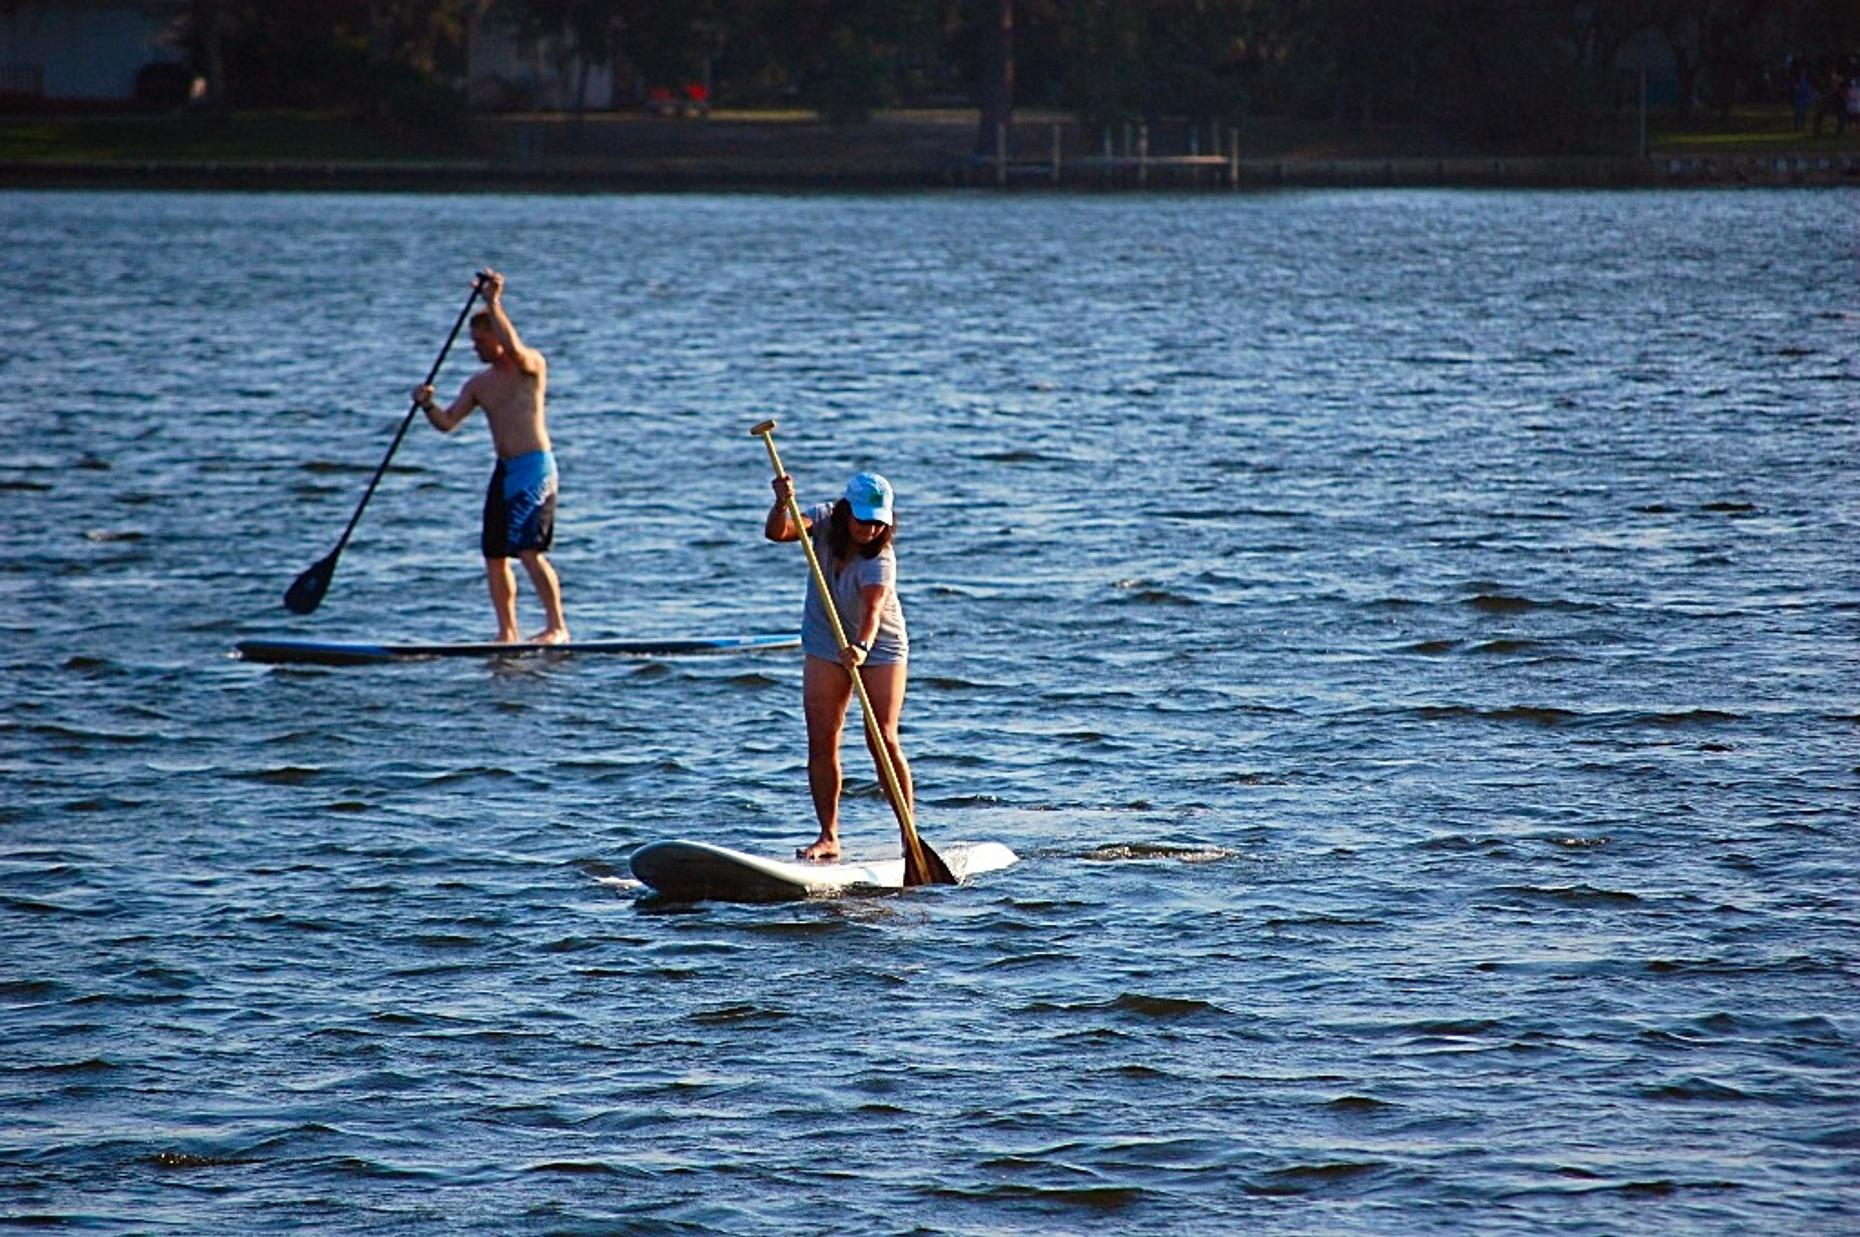 Stand-Up Paddle Board Tour in Manayunk